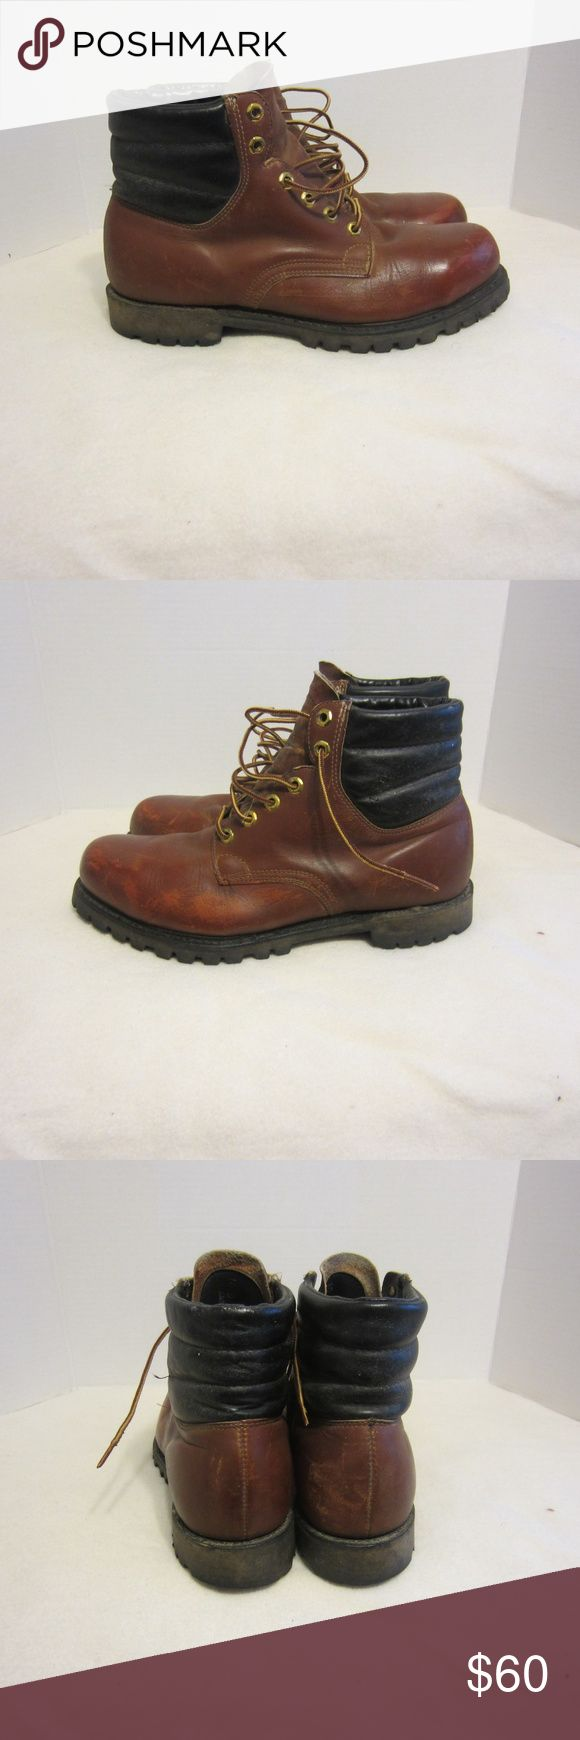 Vibram Men,s Leather Steel Toe Work Boots Sz 10D This listing is for a pair of Vibram Mens Brown Leather Steel Toe Work Boots Size 10D. Very good condition. Some minor blemishes as with many brown shoes. Soles and heels look new. Vibram Shoes Boots